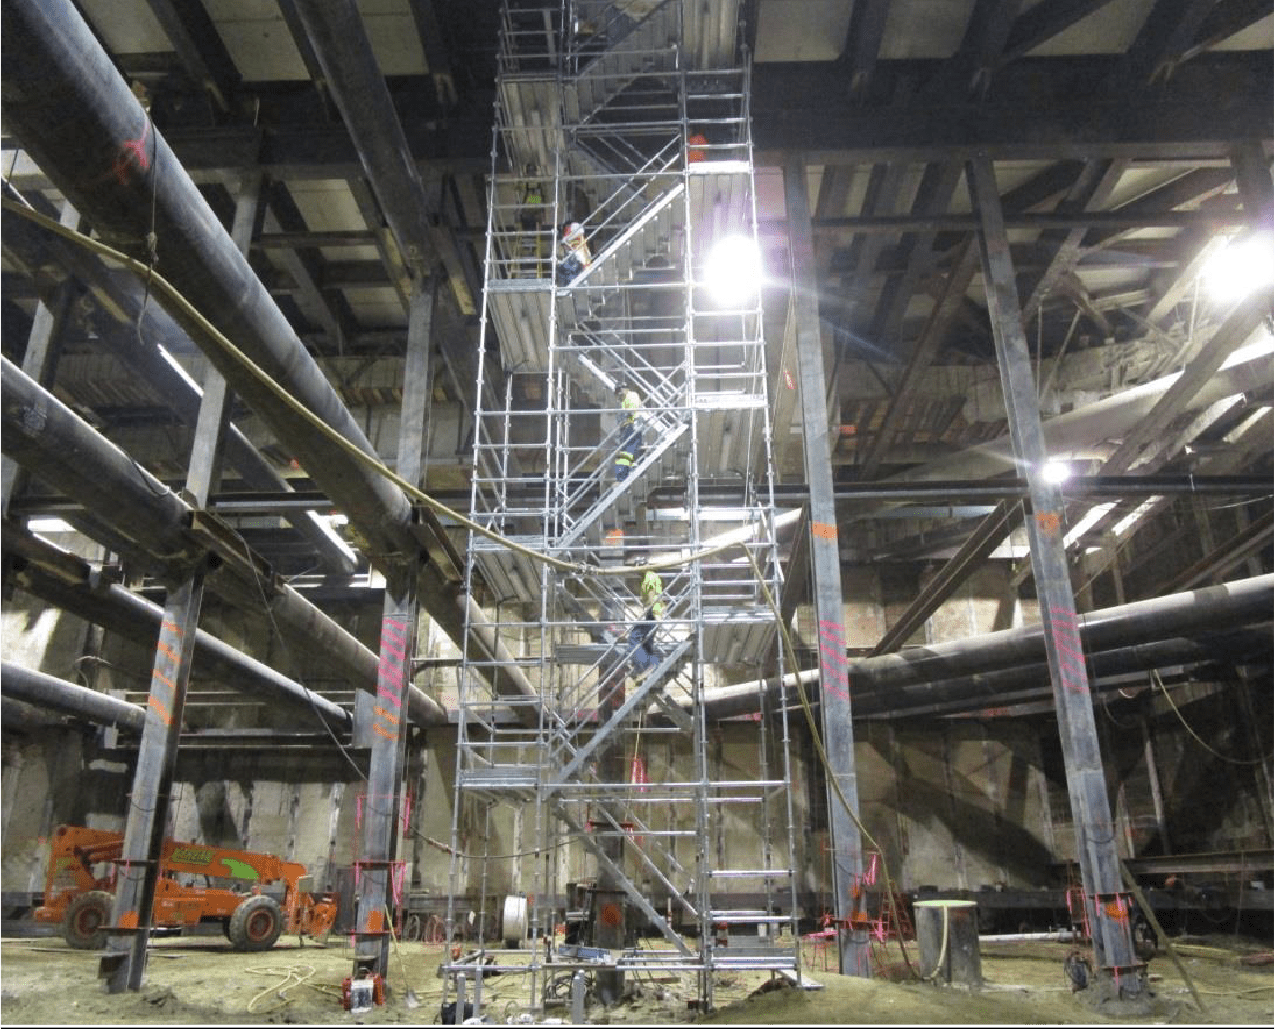 8.31.2015 EXPOSITION STATION – Stair tower in operation